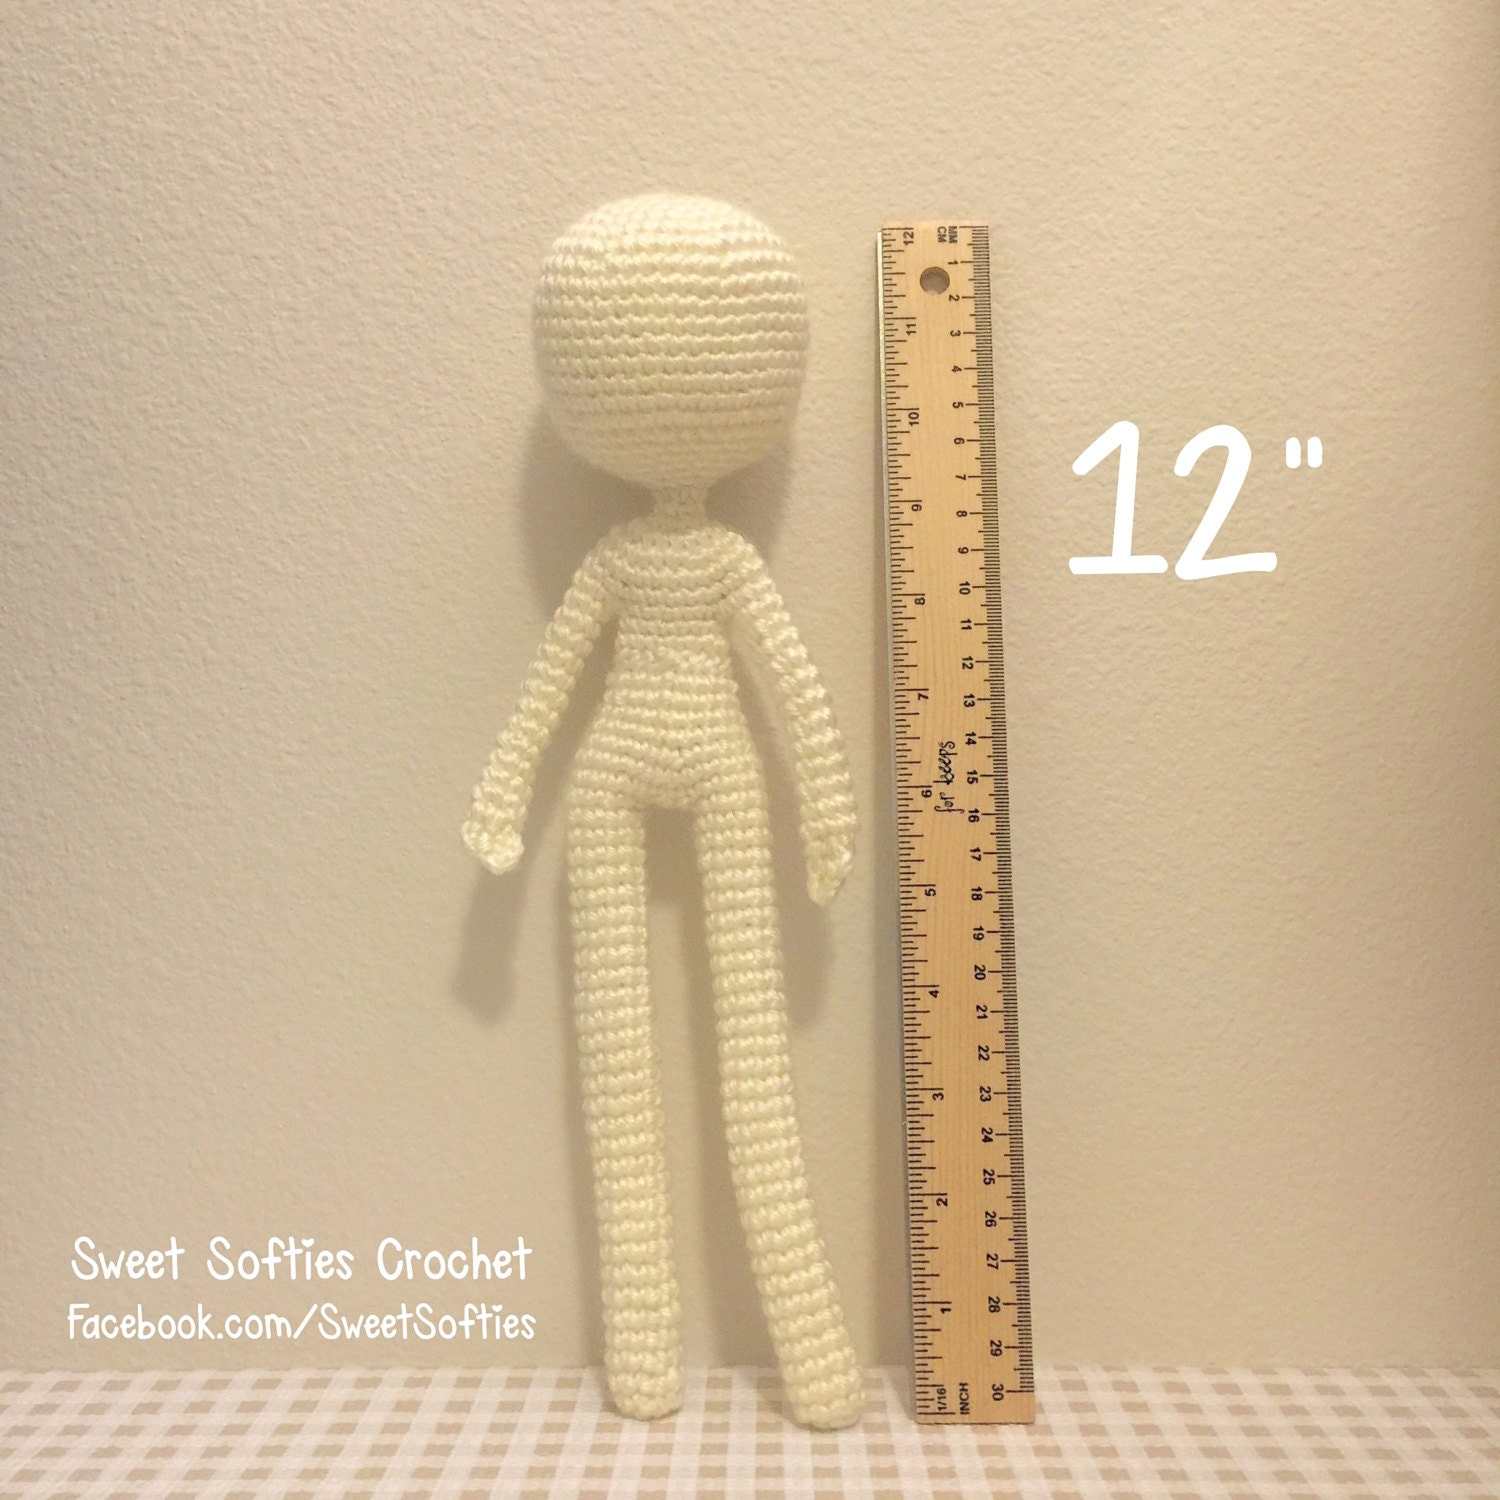 Crochet Amigurumi Doll Body : 12 Slender Doll Base Amigurumi Crochet Pattern for by Sylemn